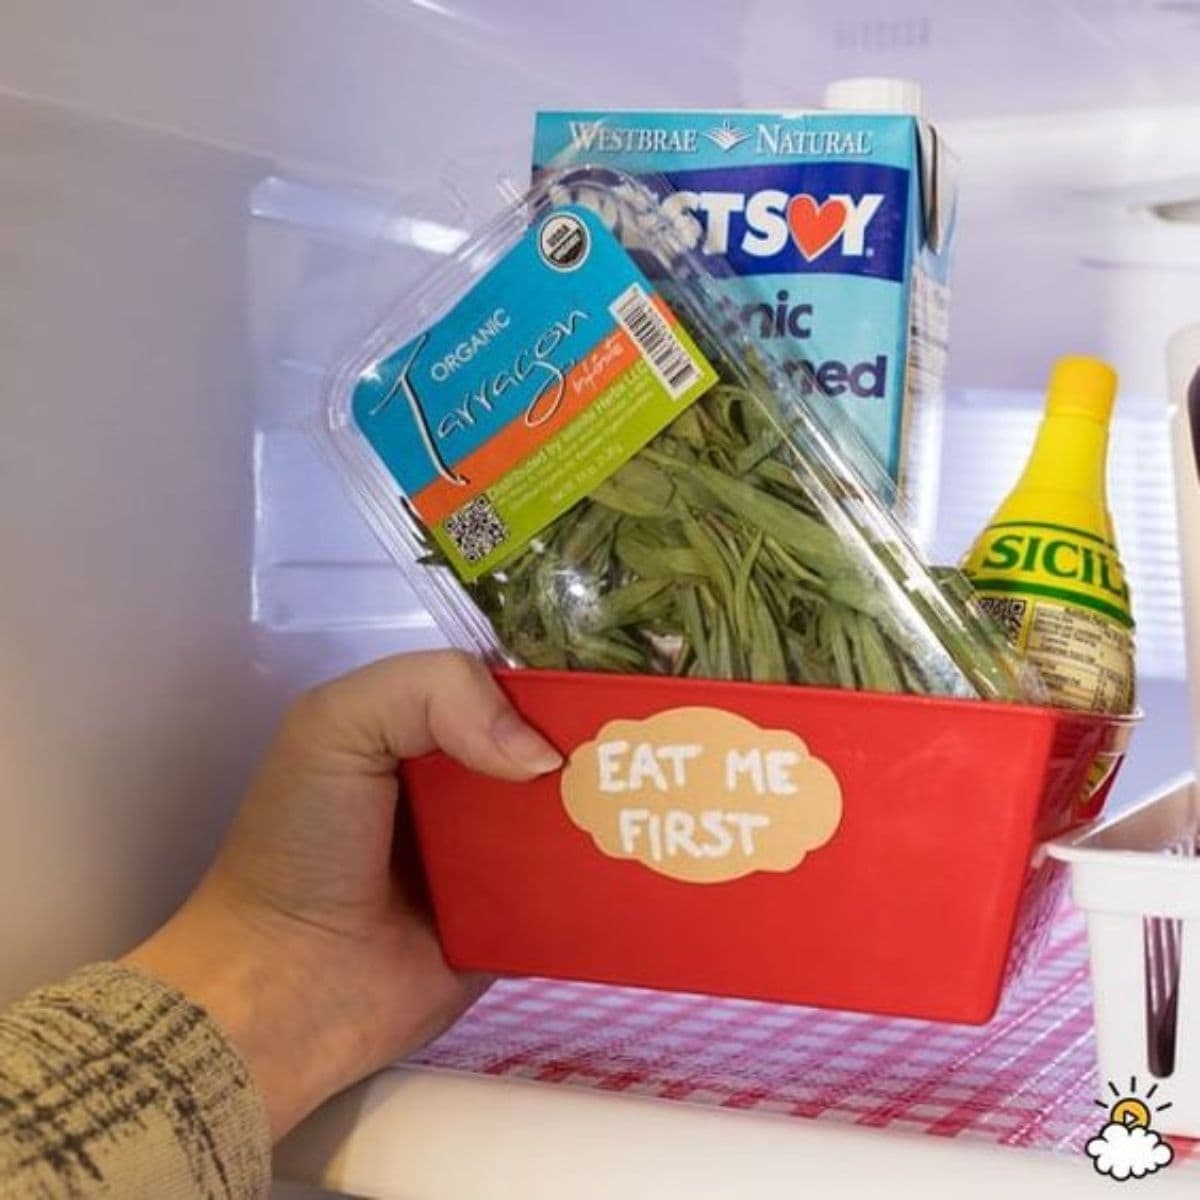 A hand reaches into a fridge and pulls out a red plastic tray with a label on the front and bags of food inside it